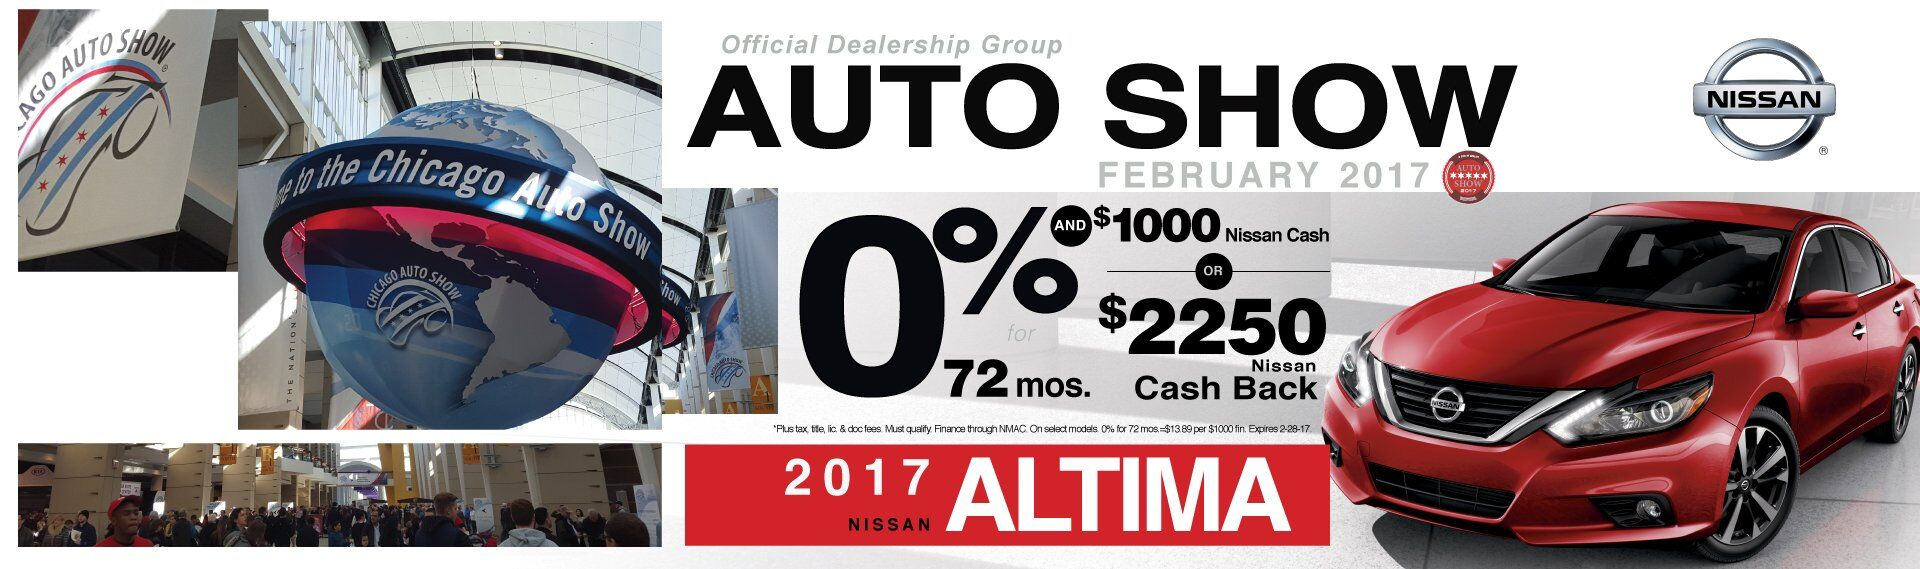 0% APR or $2250 Cash Back on 2017 Nissan Altima